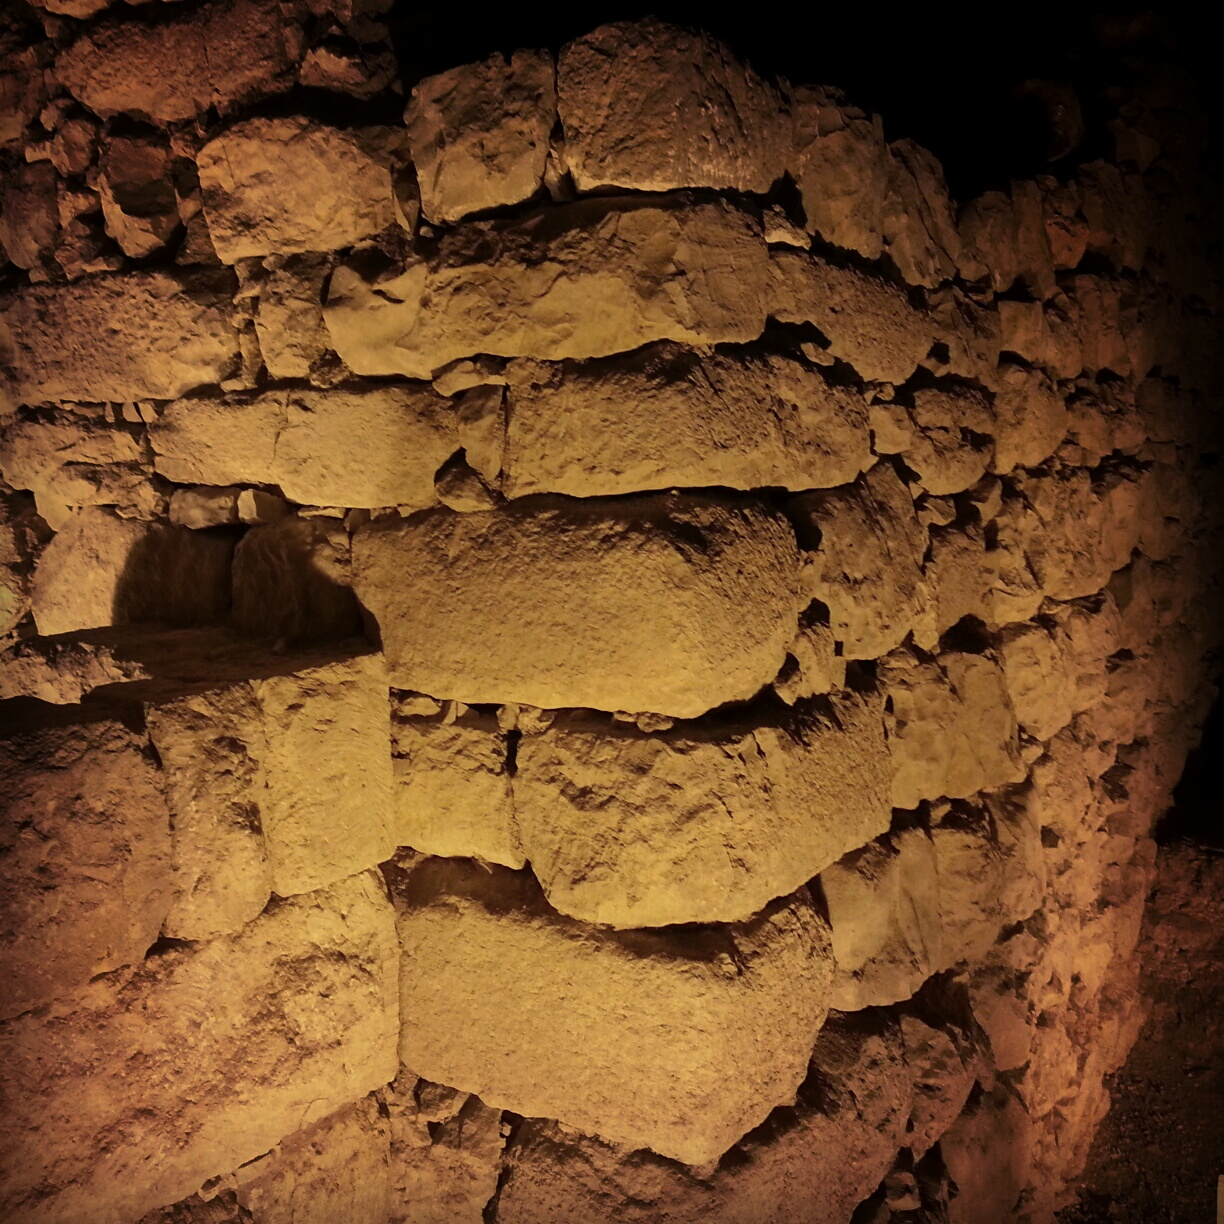 Remains of the gate tower from Hezekiah's wall around Jerusalem